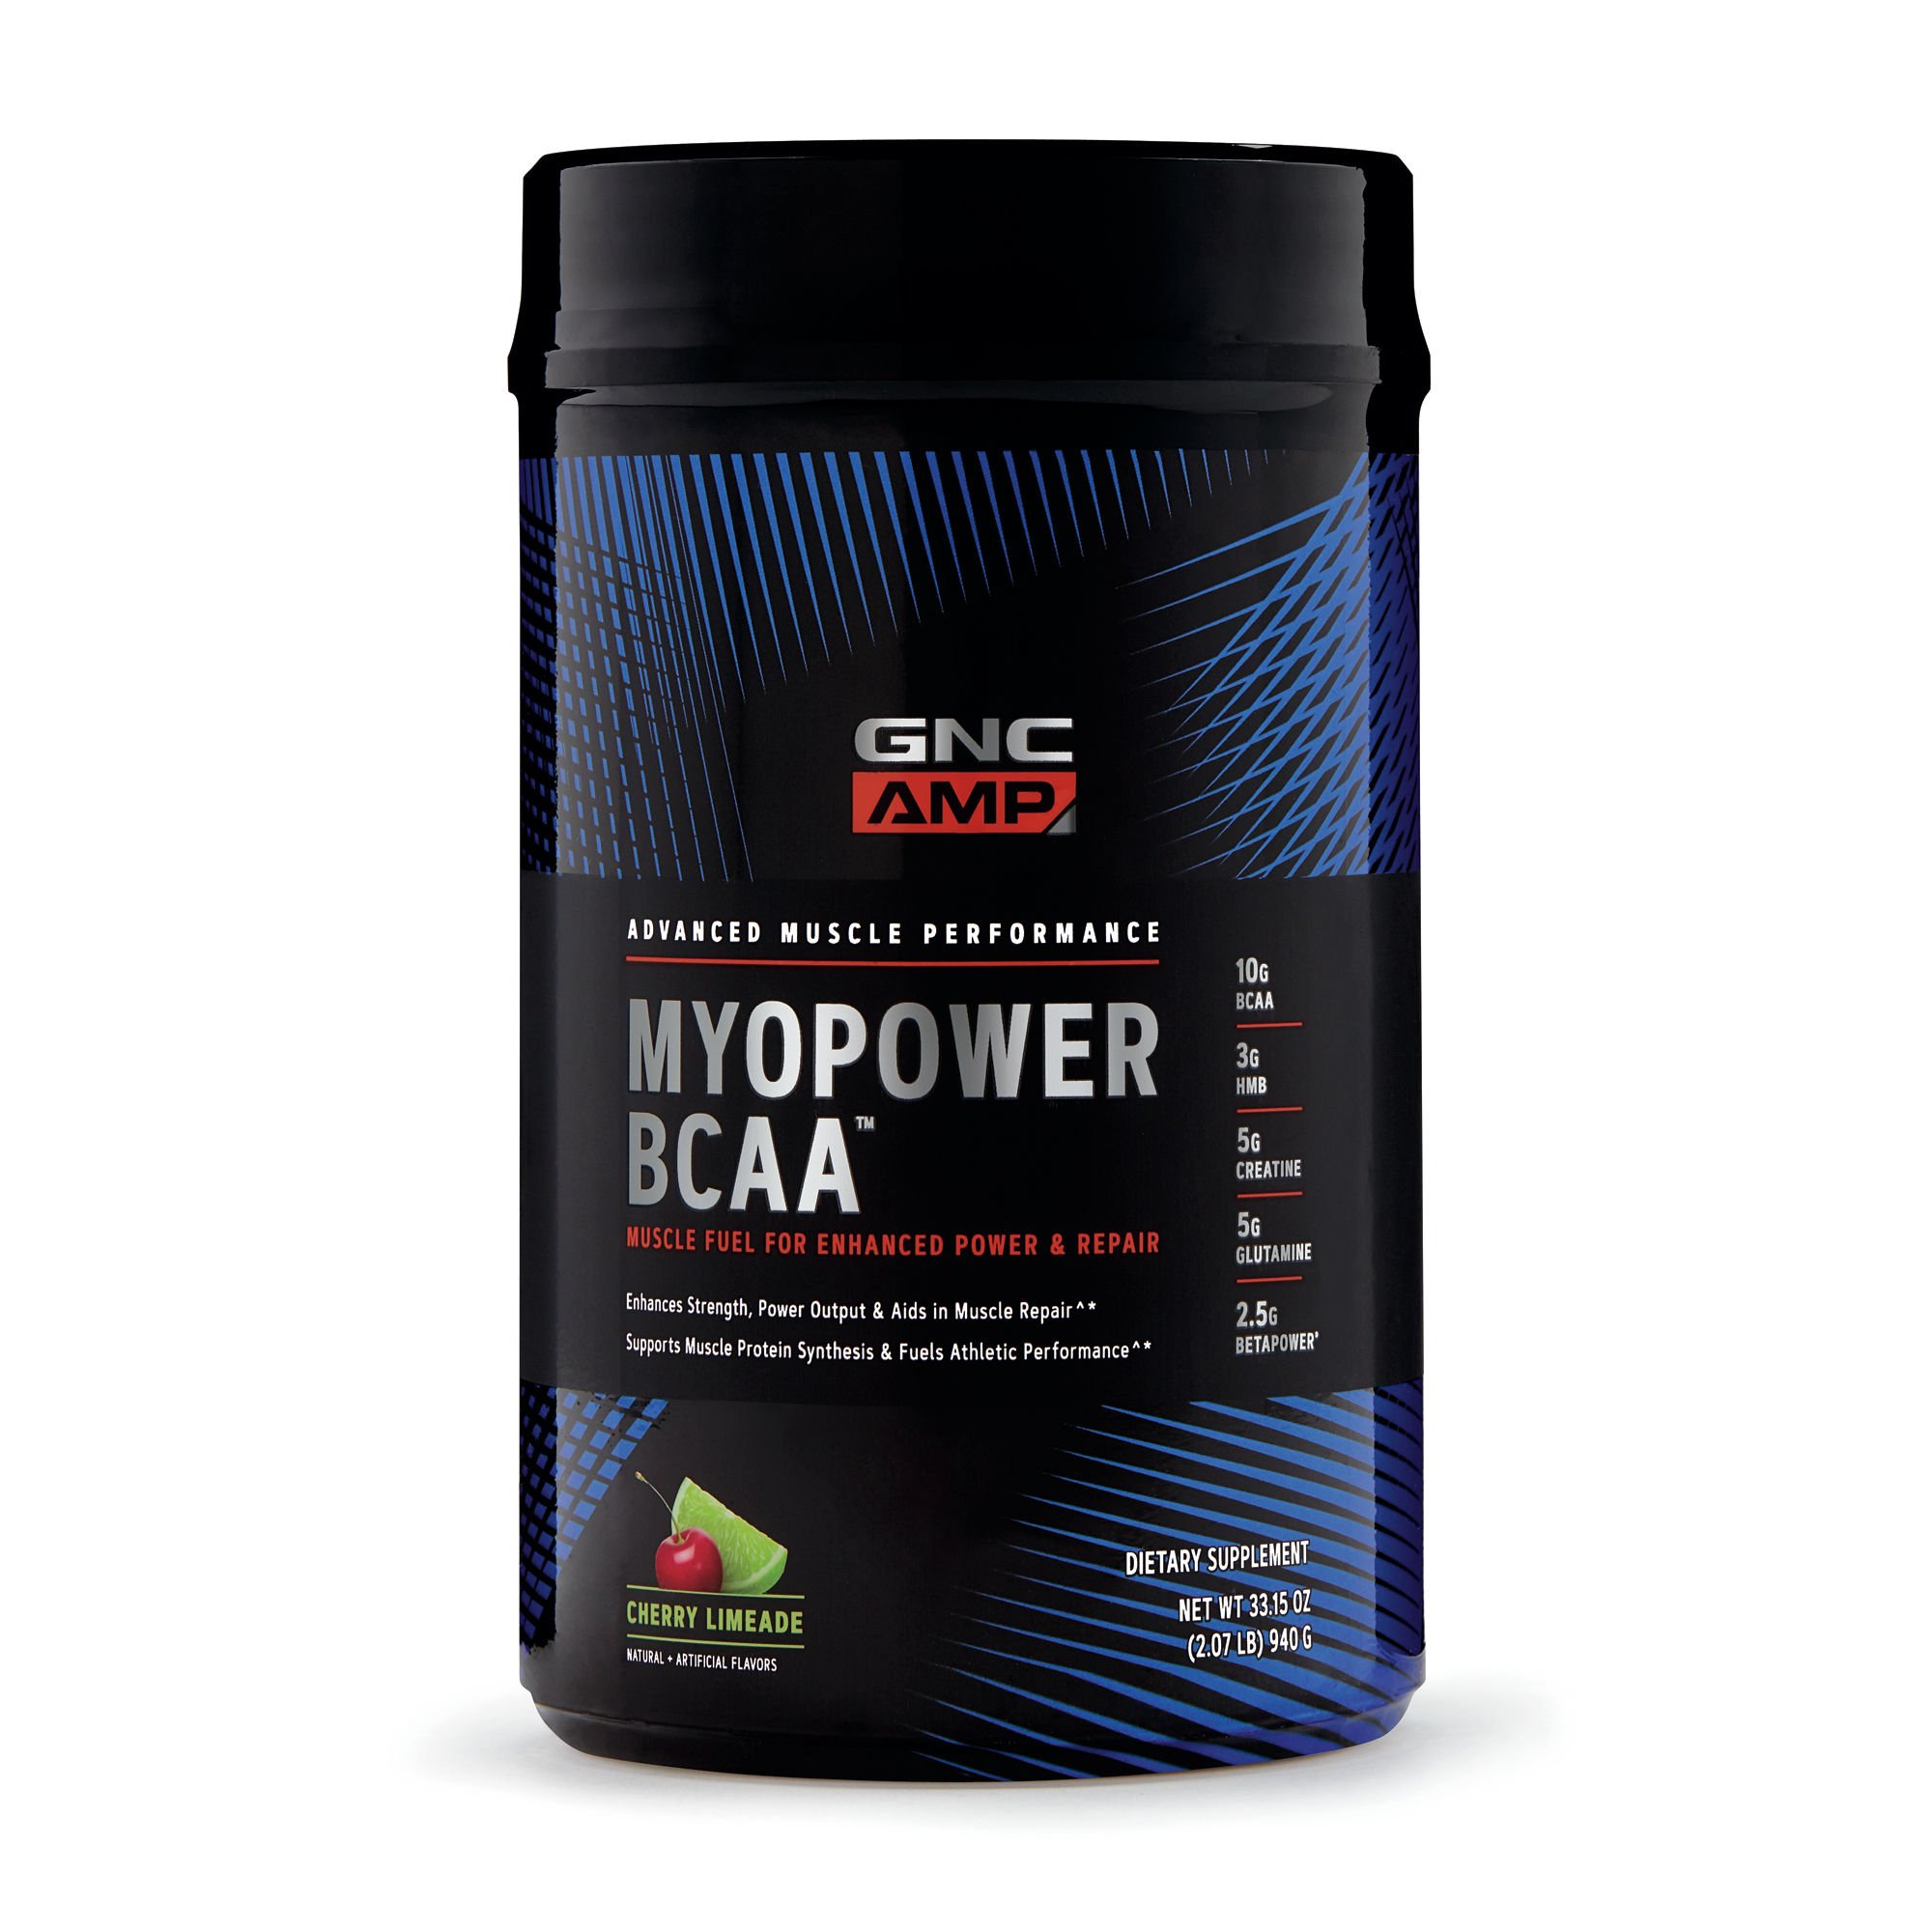 GNC AMP MYOPOWER BCAA, Cherry Limeade, 20 Servings, Supports Muscle Protein Synthesis and Fuels Performance